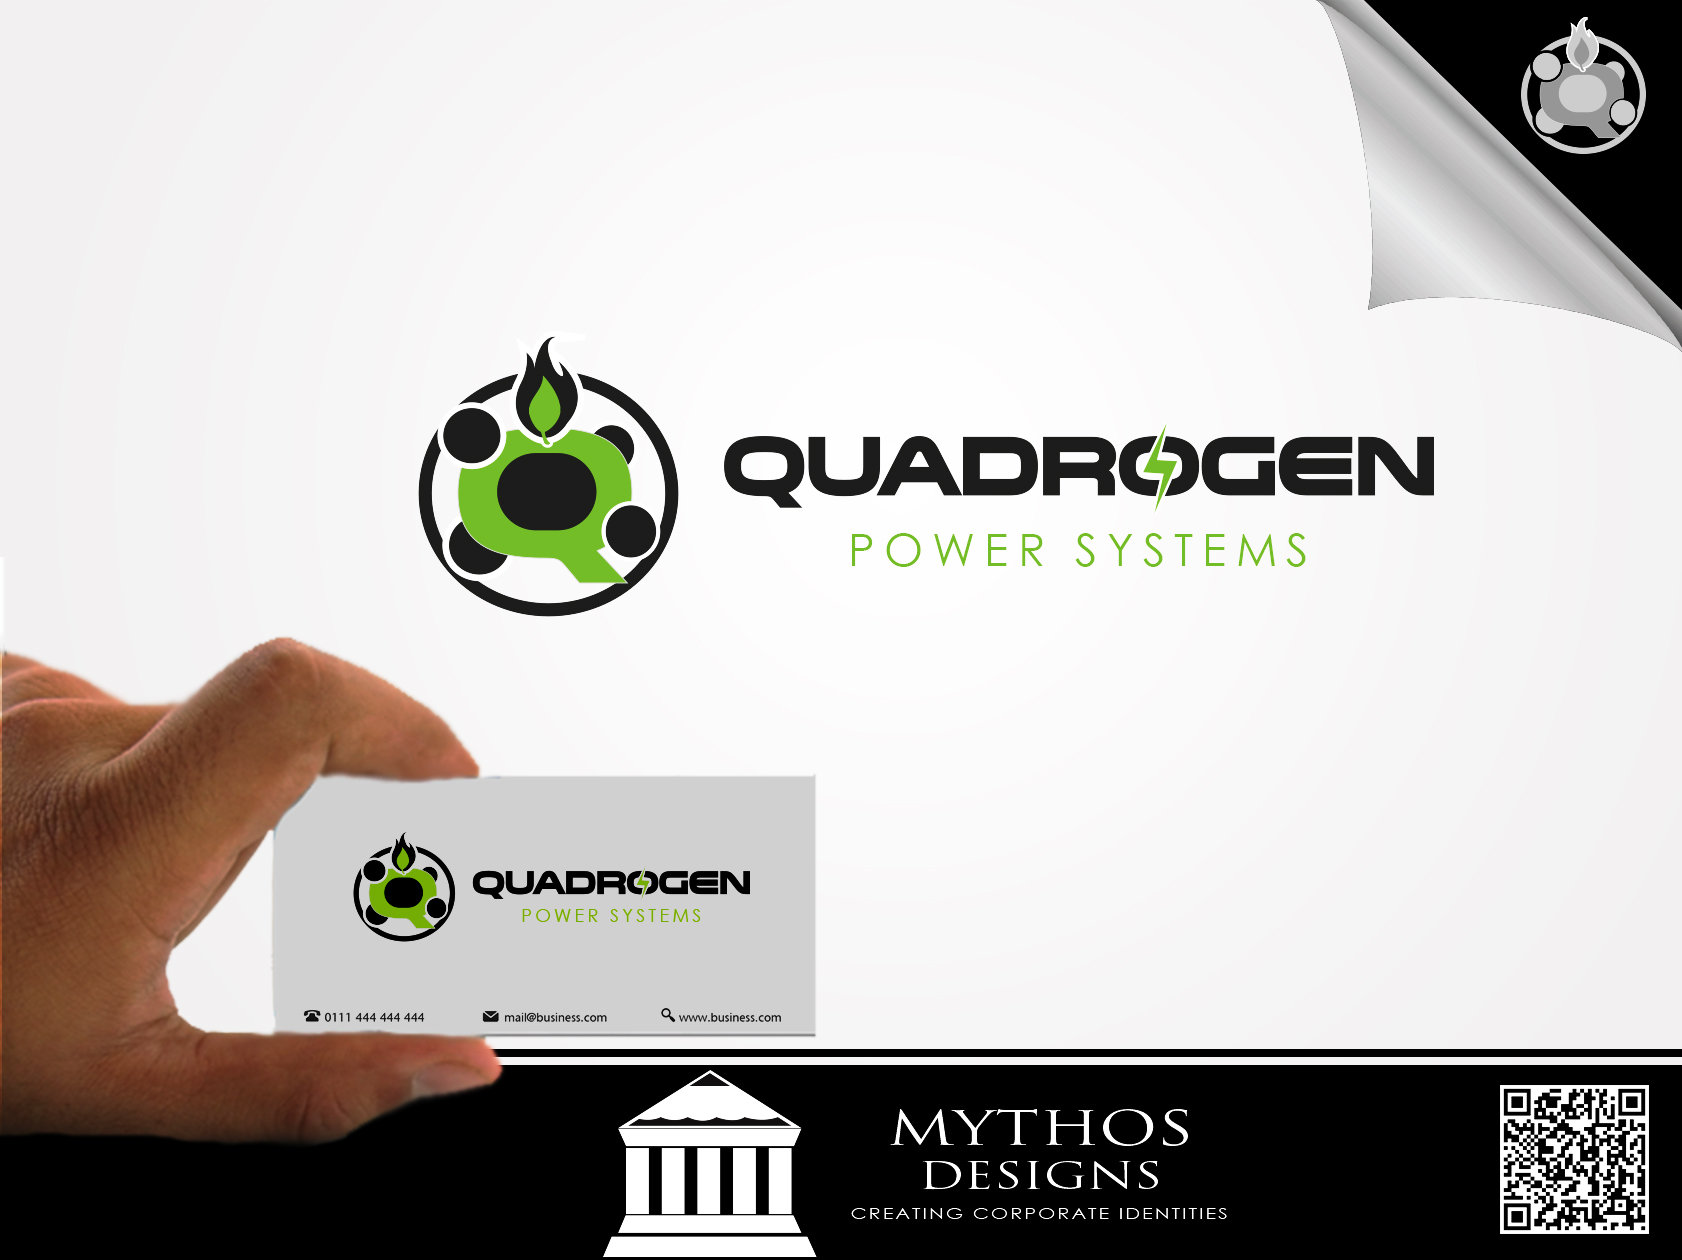 Logo Design by Mythos Designs - Entry No. 124 in the Logo Design Contest New Logo Design for Quadrogen Power Systems, Inc.